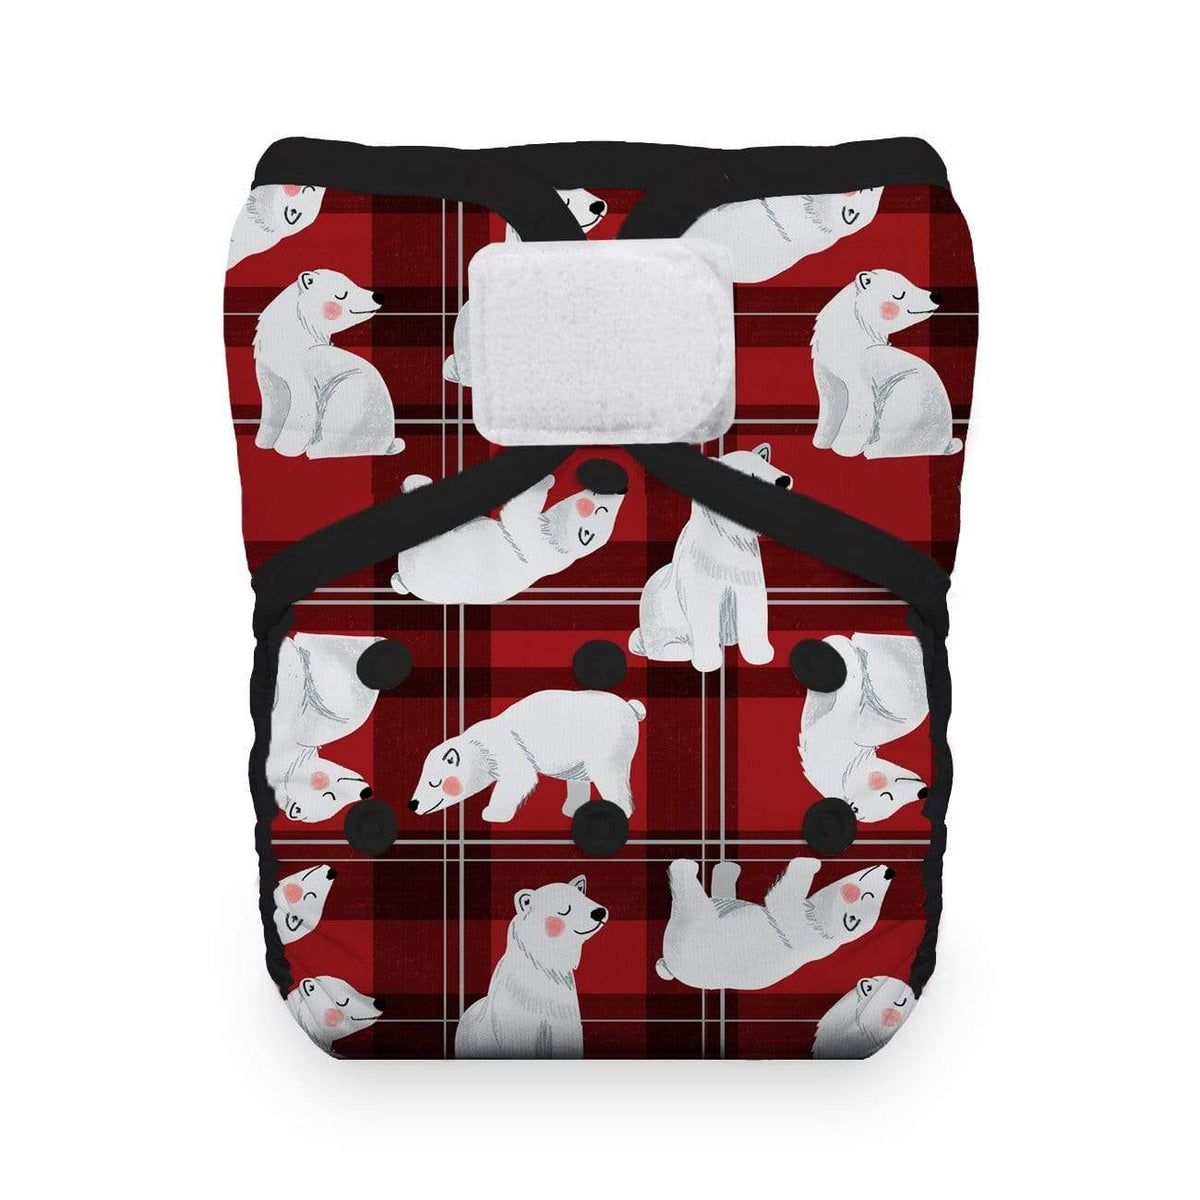 Thirsties One Size Hook and Loop Pocket Diaper - Polar Plaid